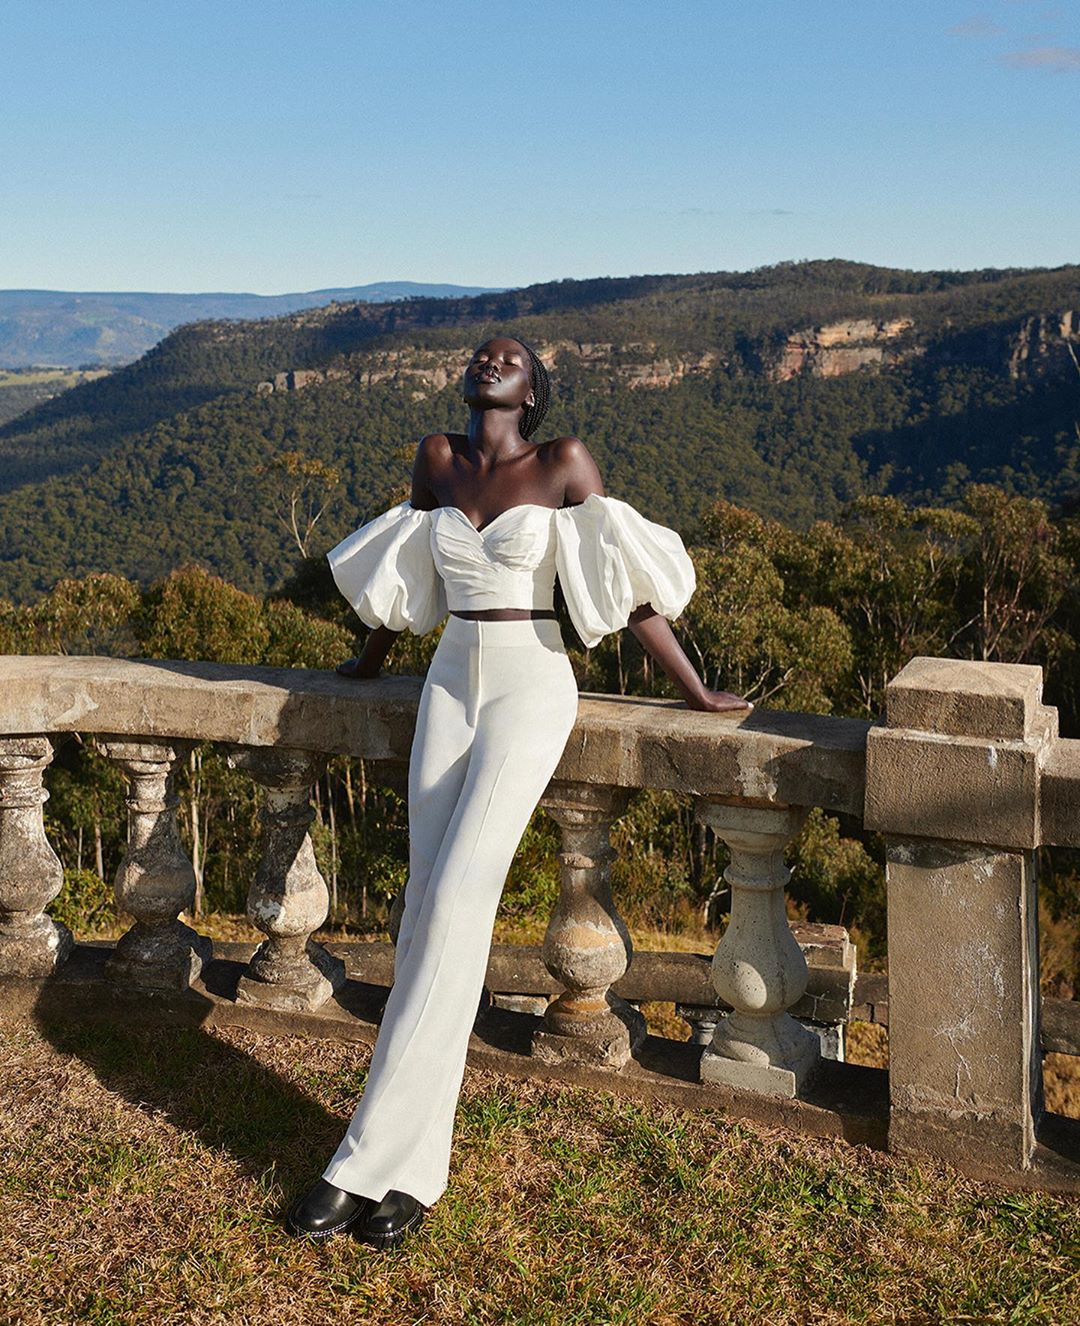 5Adut Akech Shines In David Jones Spring 2020 Campaign Proves She Looks Good In Everything